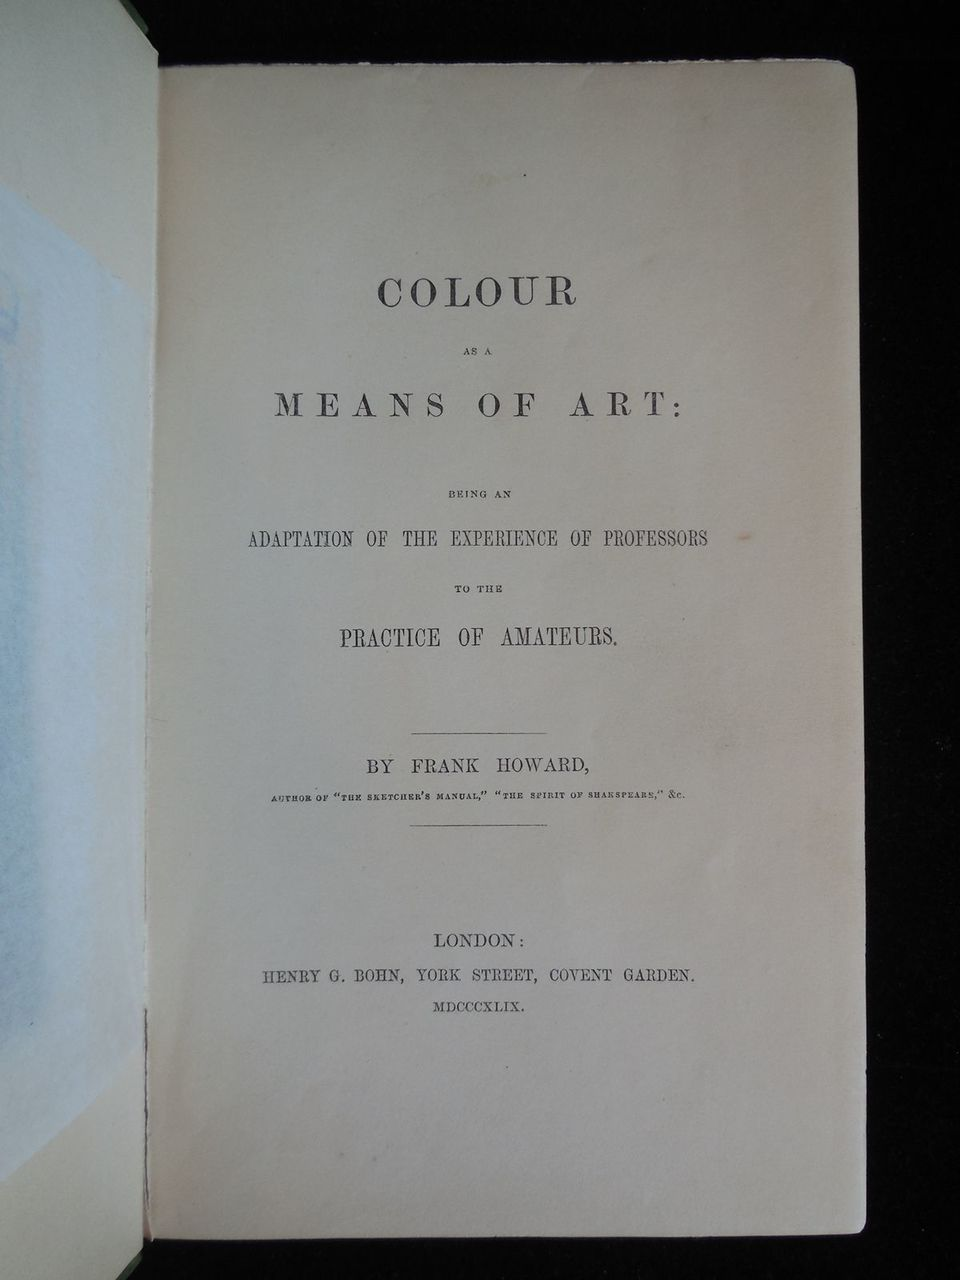 COLOUR AS A MEANS OF ART, by Frank Howard